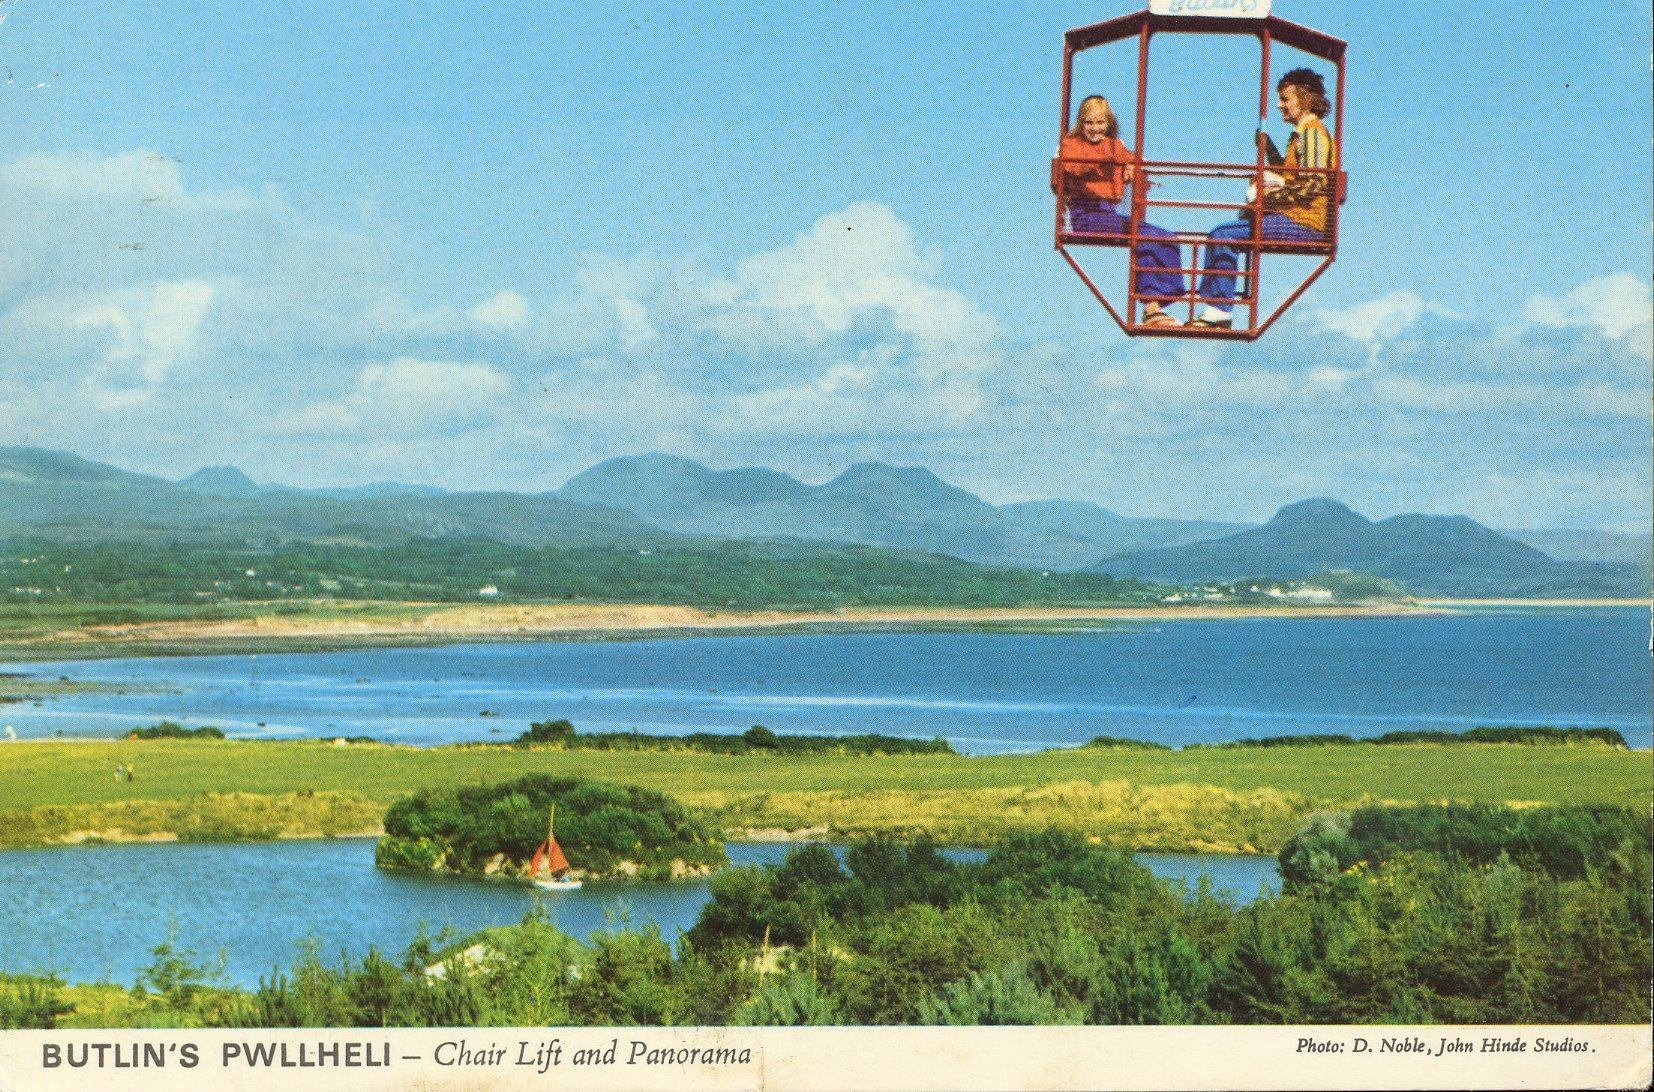 Butlins Pwllheli - Chairlift & Panorama (postcard, early 1970s)